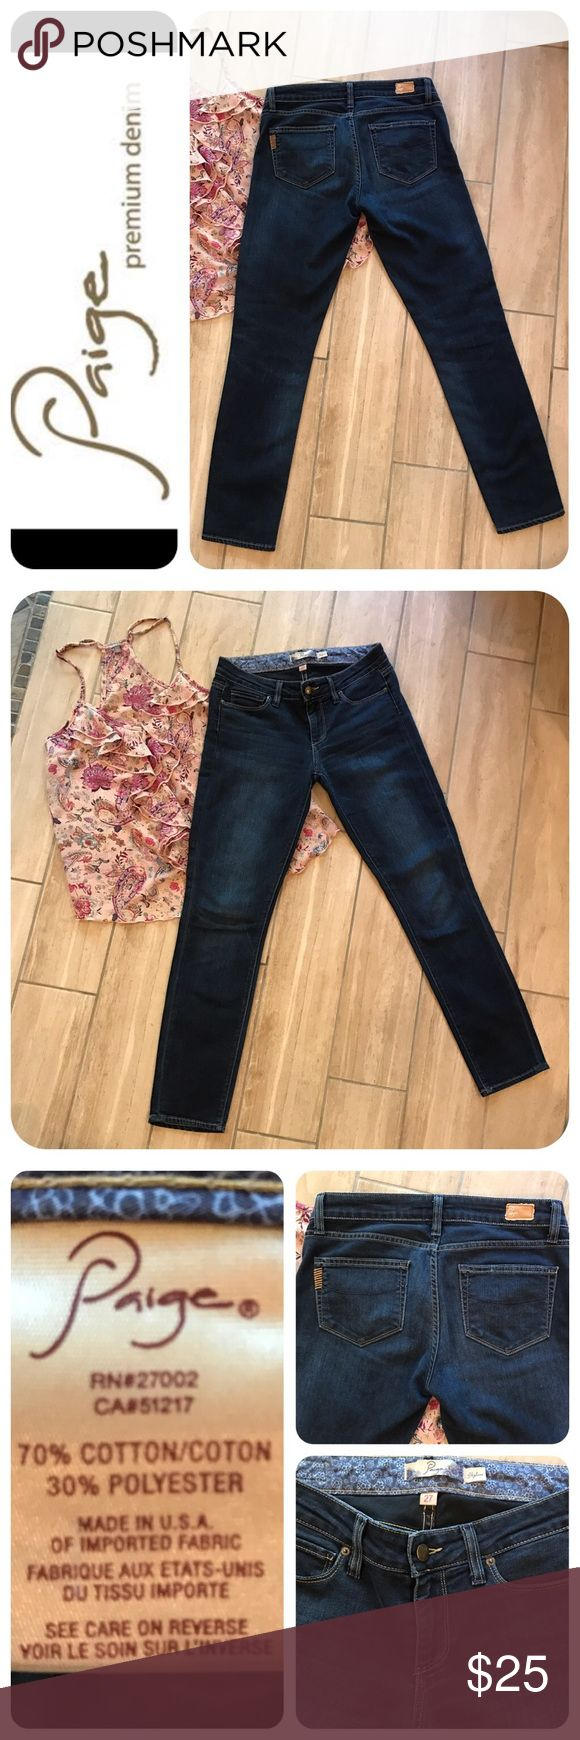 "🔥SALE!!🦋Paige Skyline Skinny Ankle Jeans 🦋 Everyone needs a pair of these in their closet! Dark wash with slight whiskering, stretch, 8"" rise and 29"" inseam. Smooth profile for wearing with a flowy tank or a fitted T...finish the look with some fringed booties and you're ready to go 😊. Very gentle pre-loved condition. 🦋No trades or lowball offers, please. Paige Jeans Jeans Skinny"